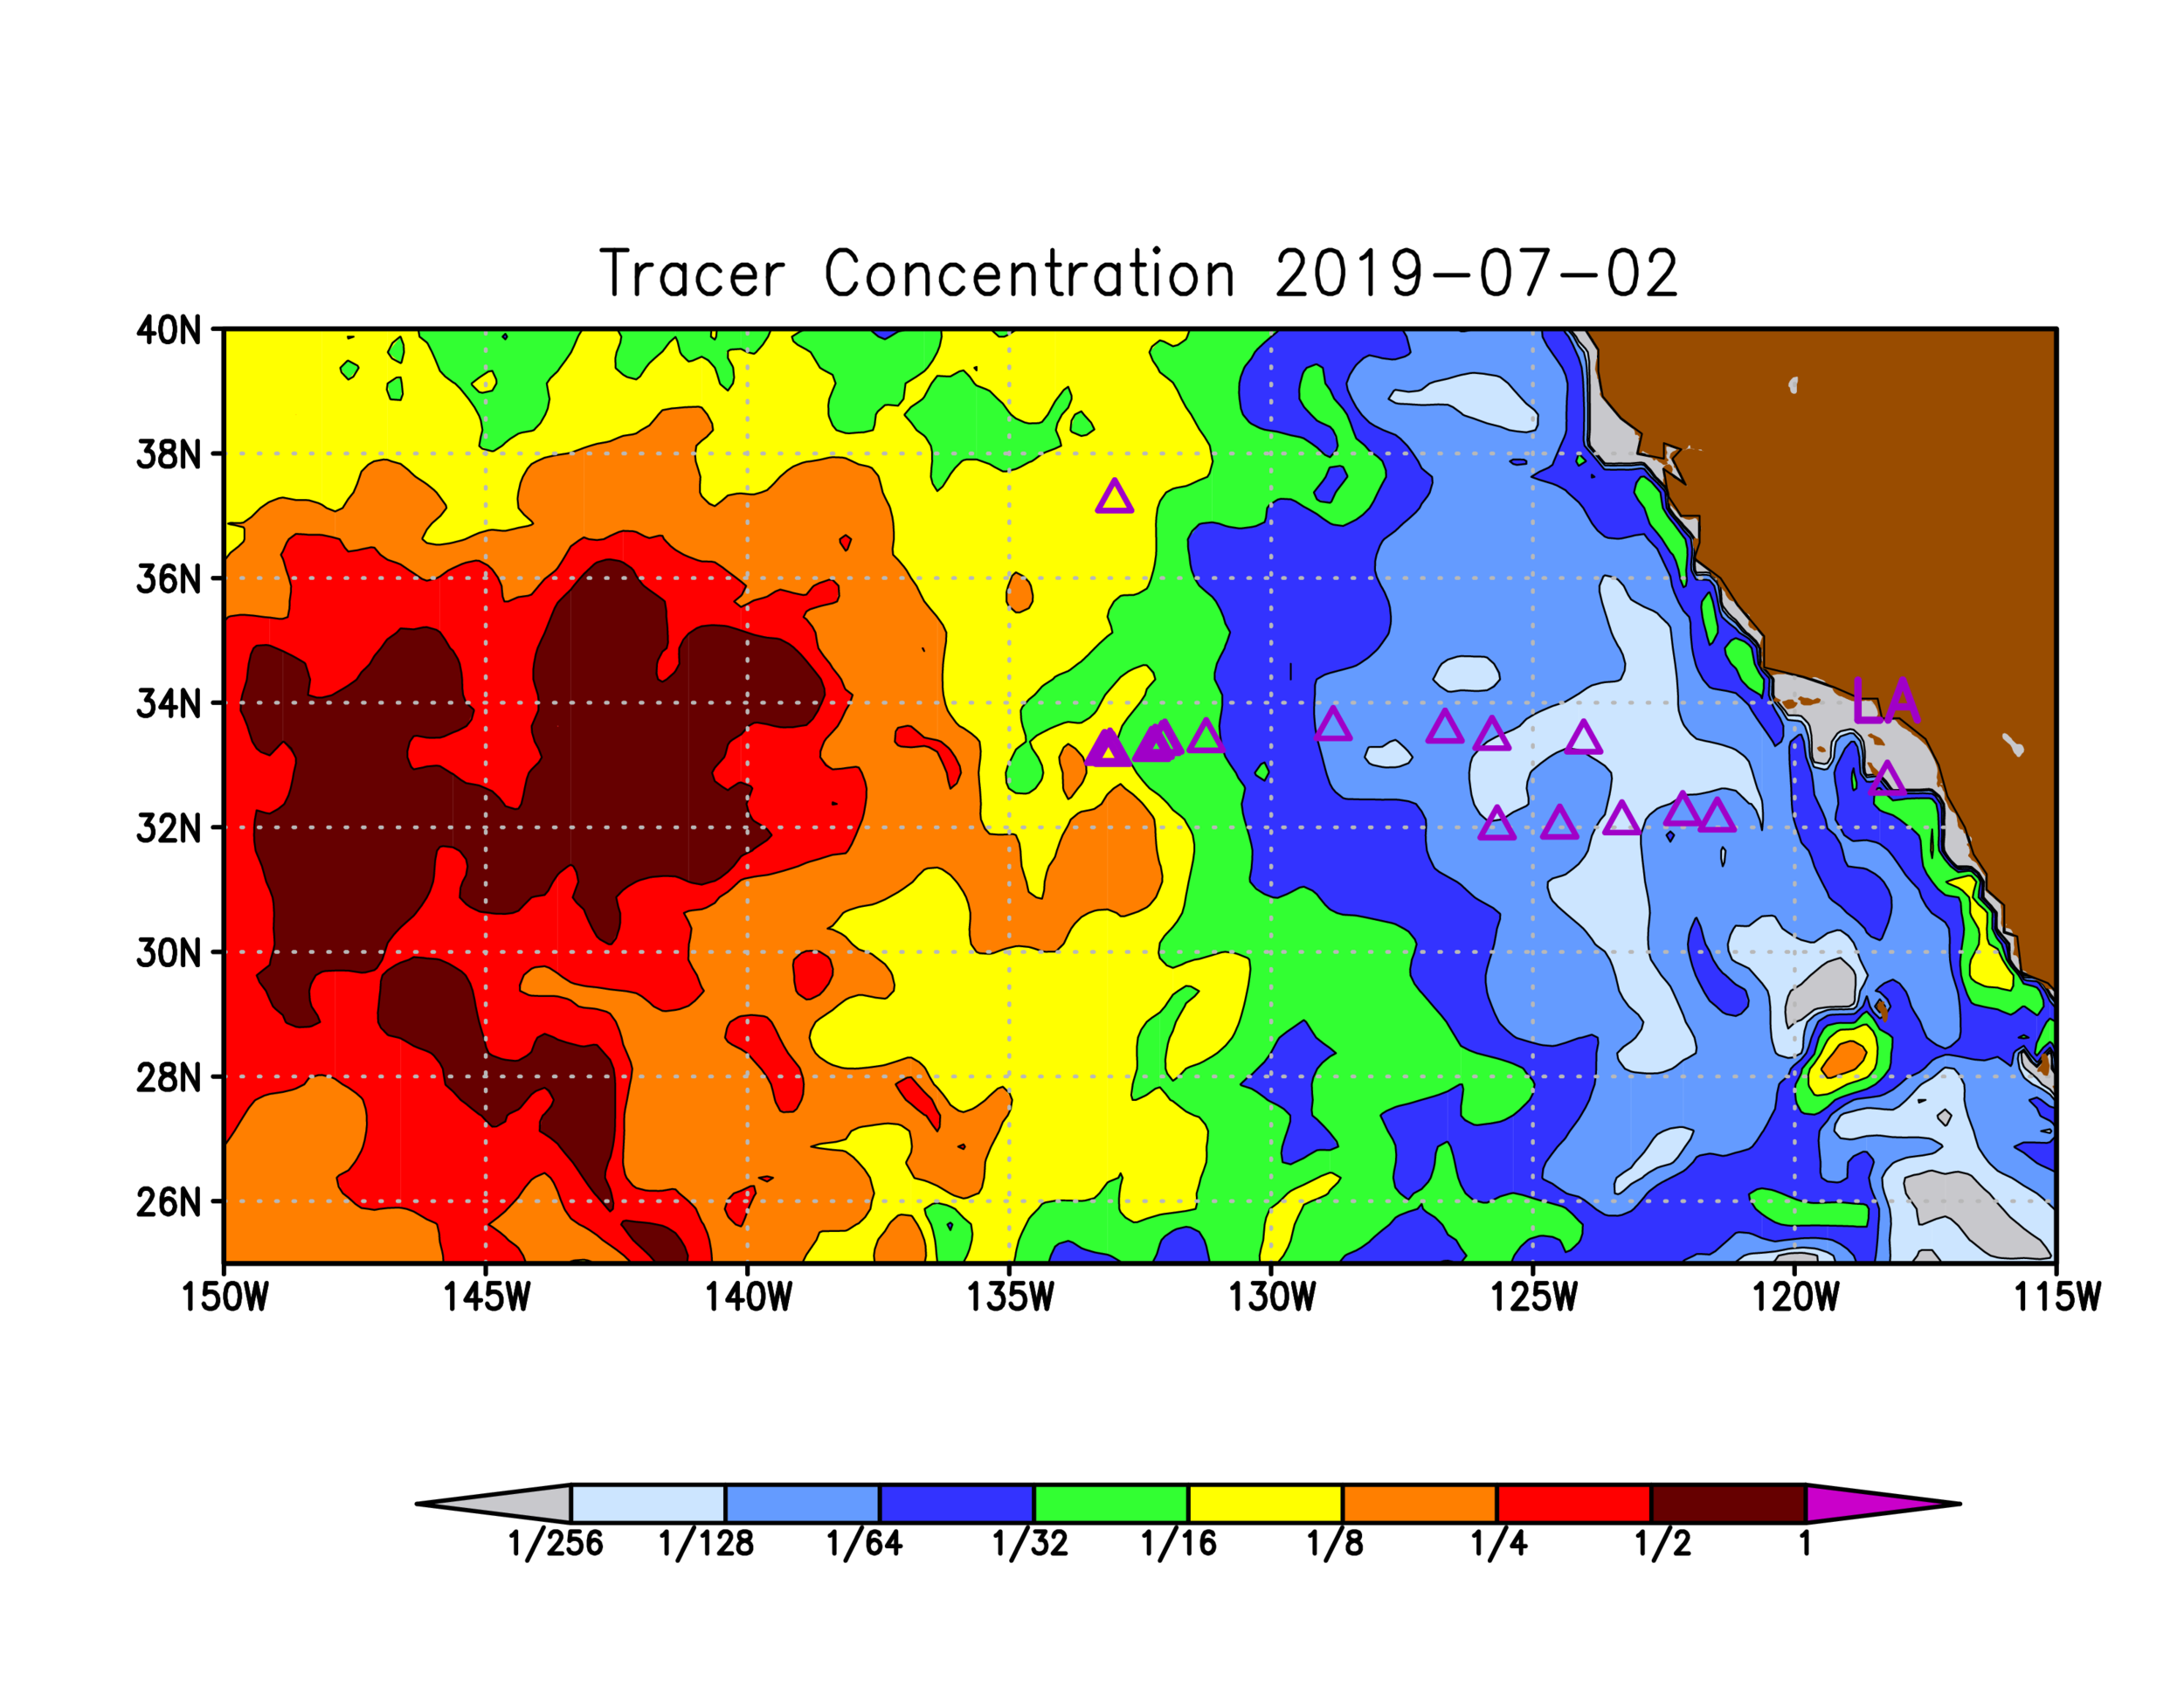 scaled_CONC_daily_algalita_stations_2019-07-02.png